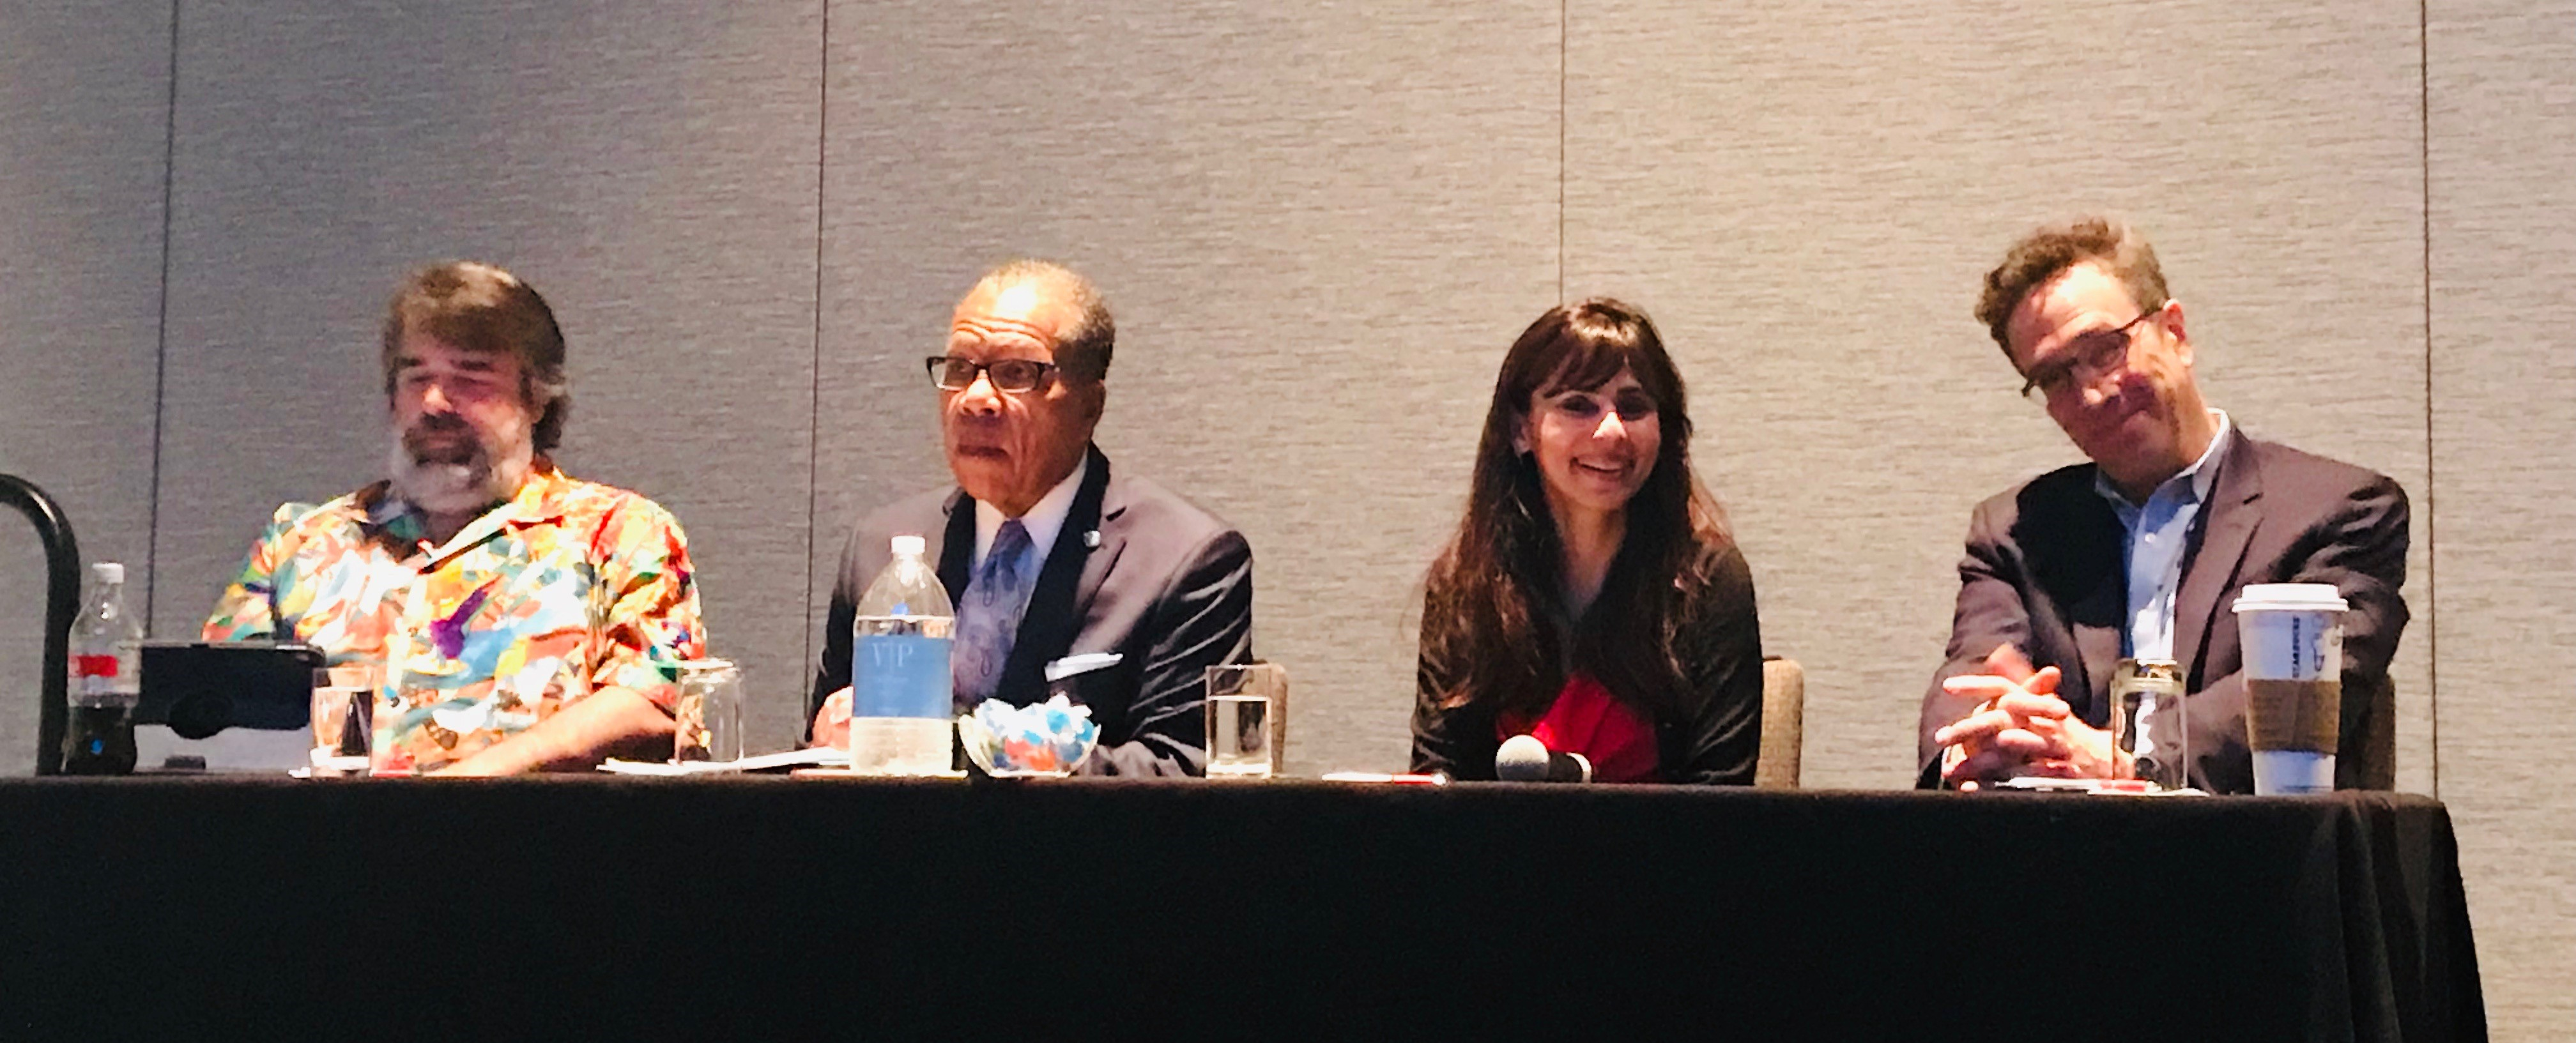 Panelists at the American Association of Community Colleges 2019 National Convention